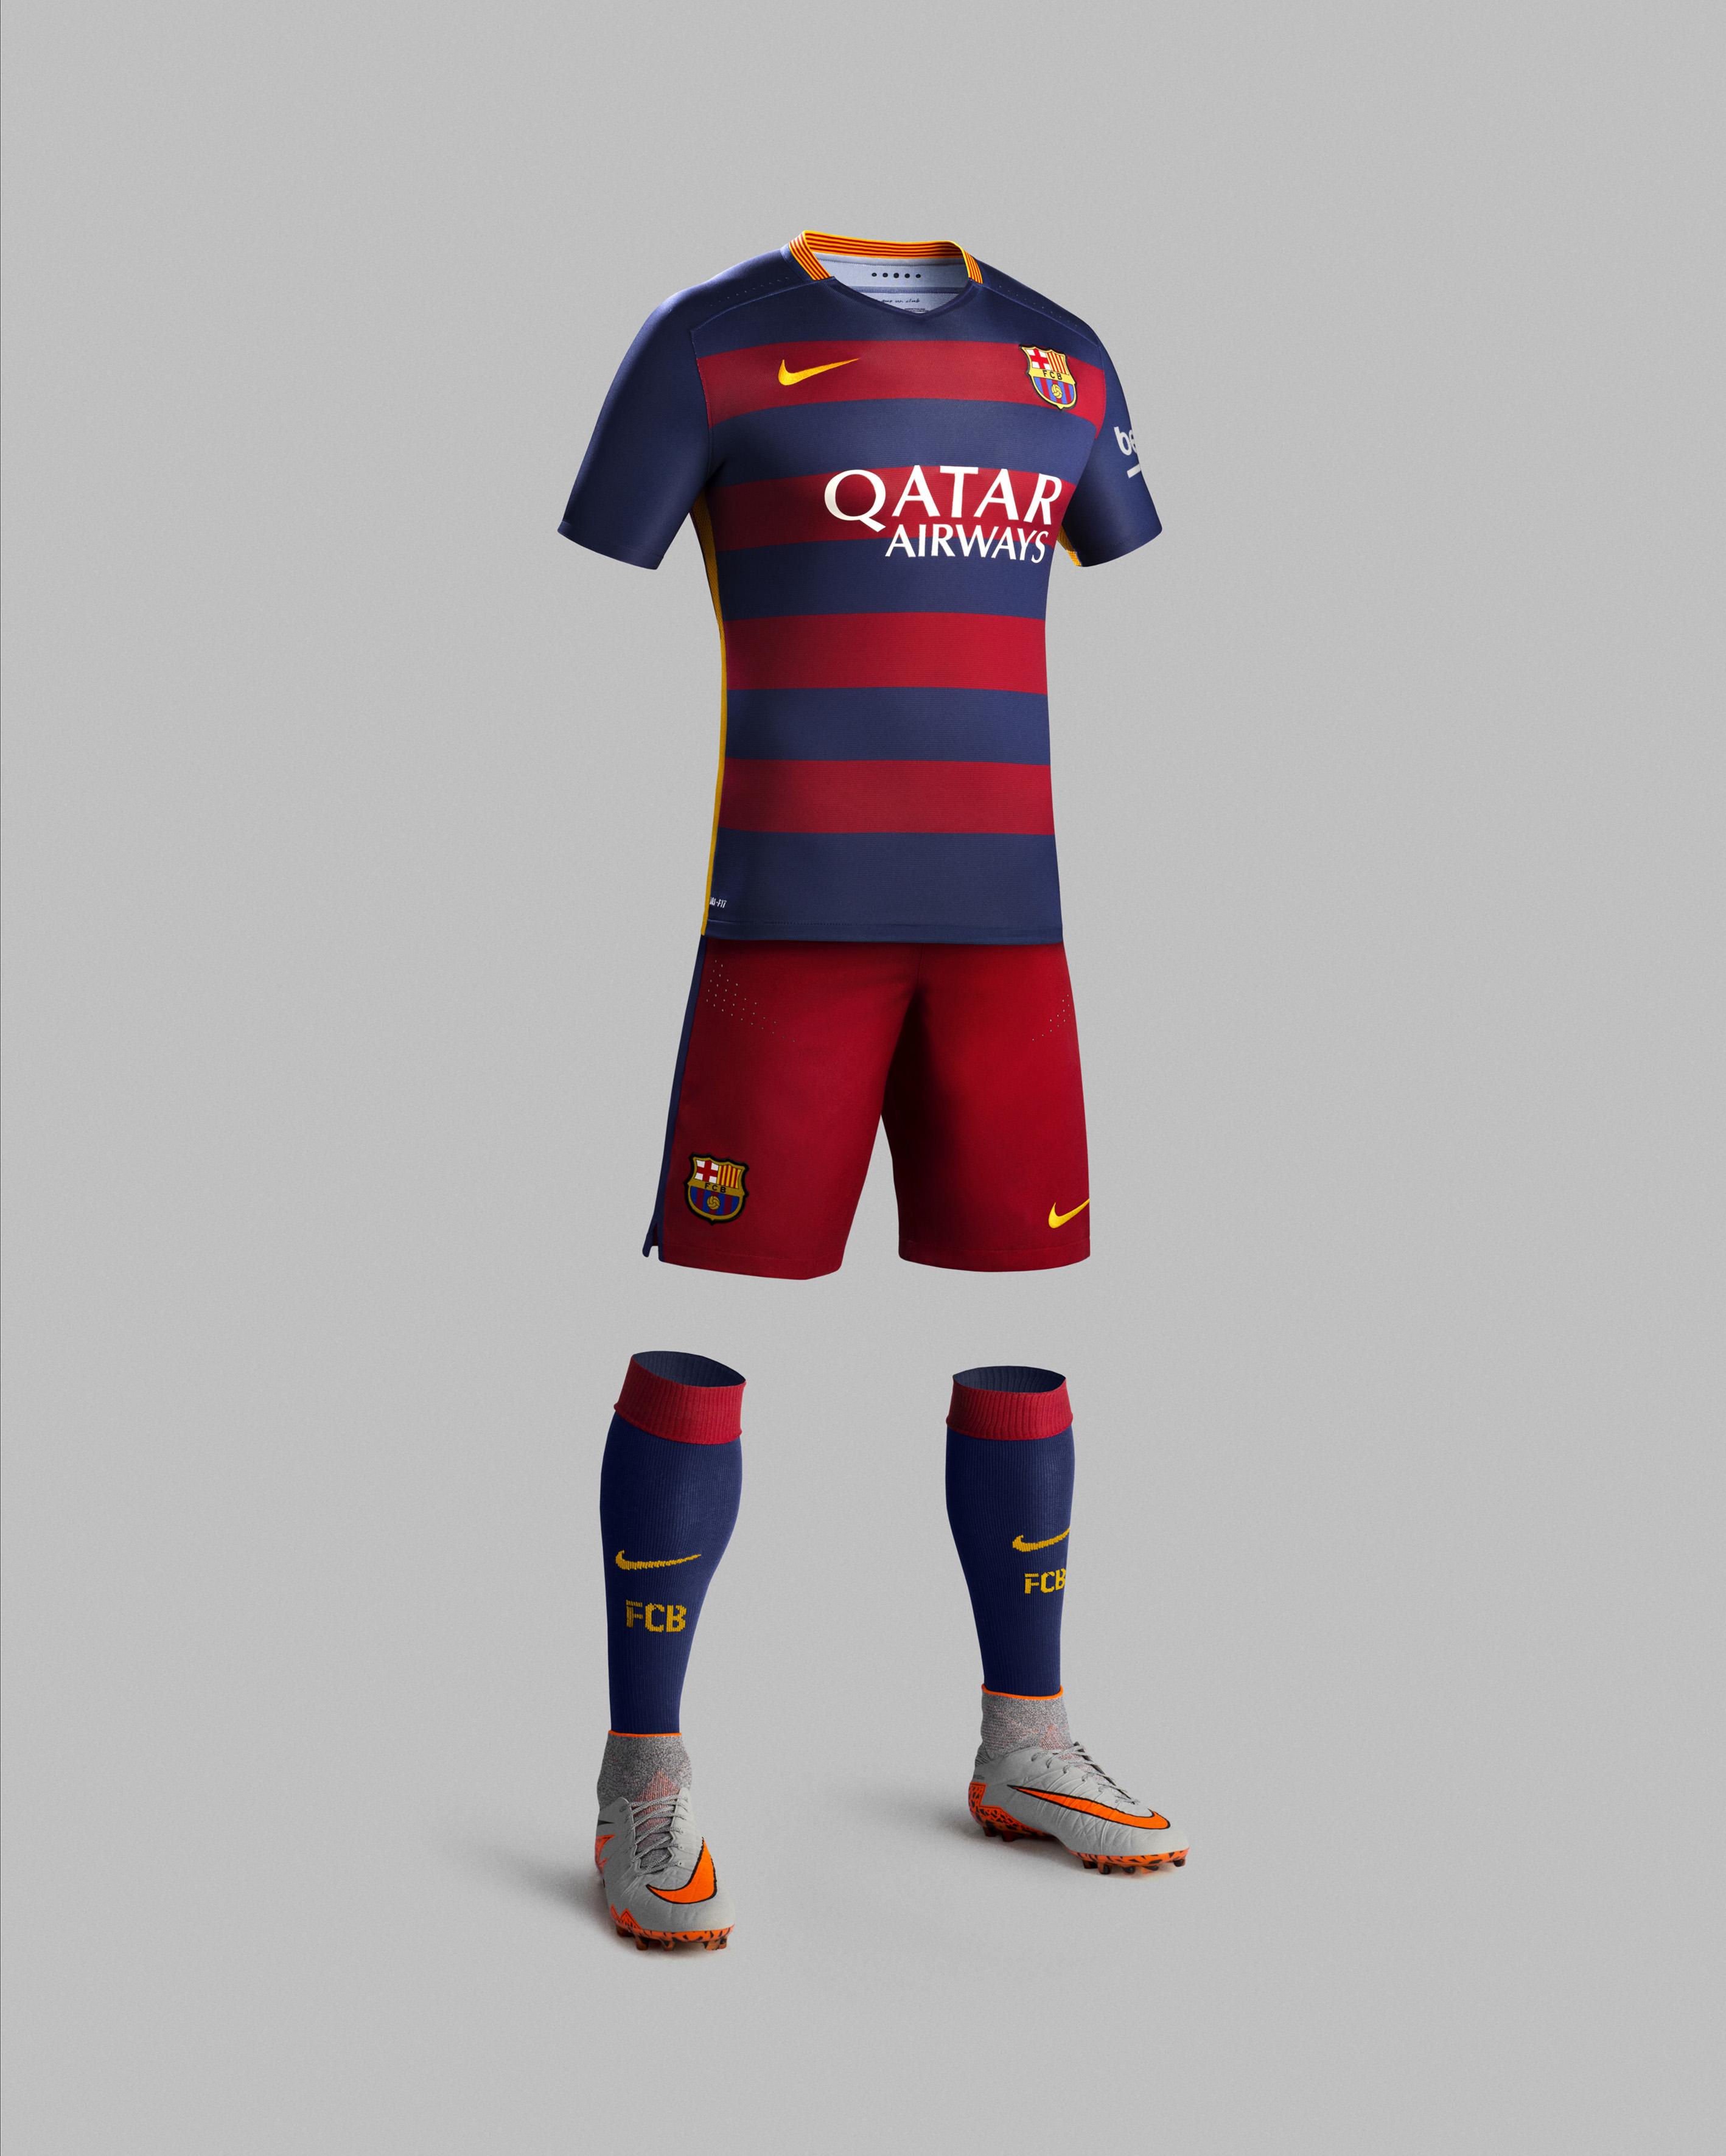 6dbbc10bb99 fc barcelona jersey 2015 on sale   OFF49% Discounts